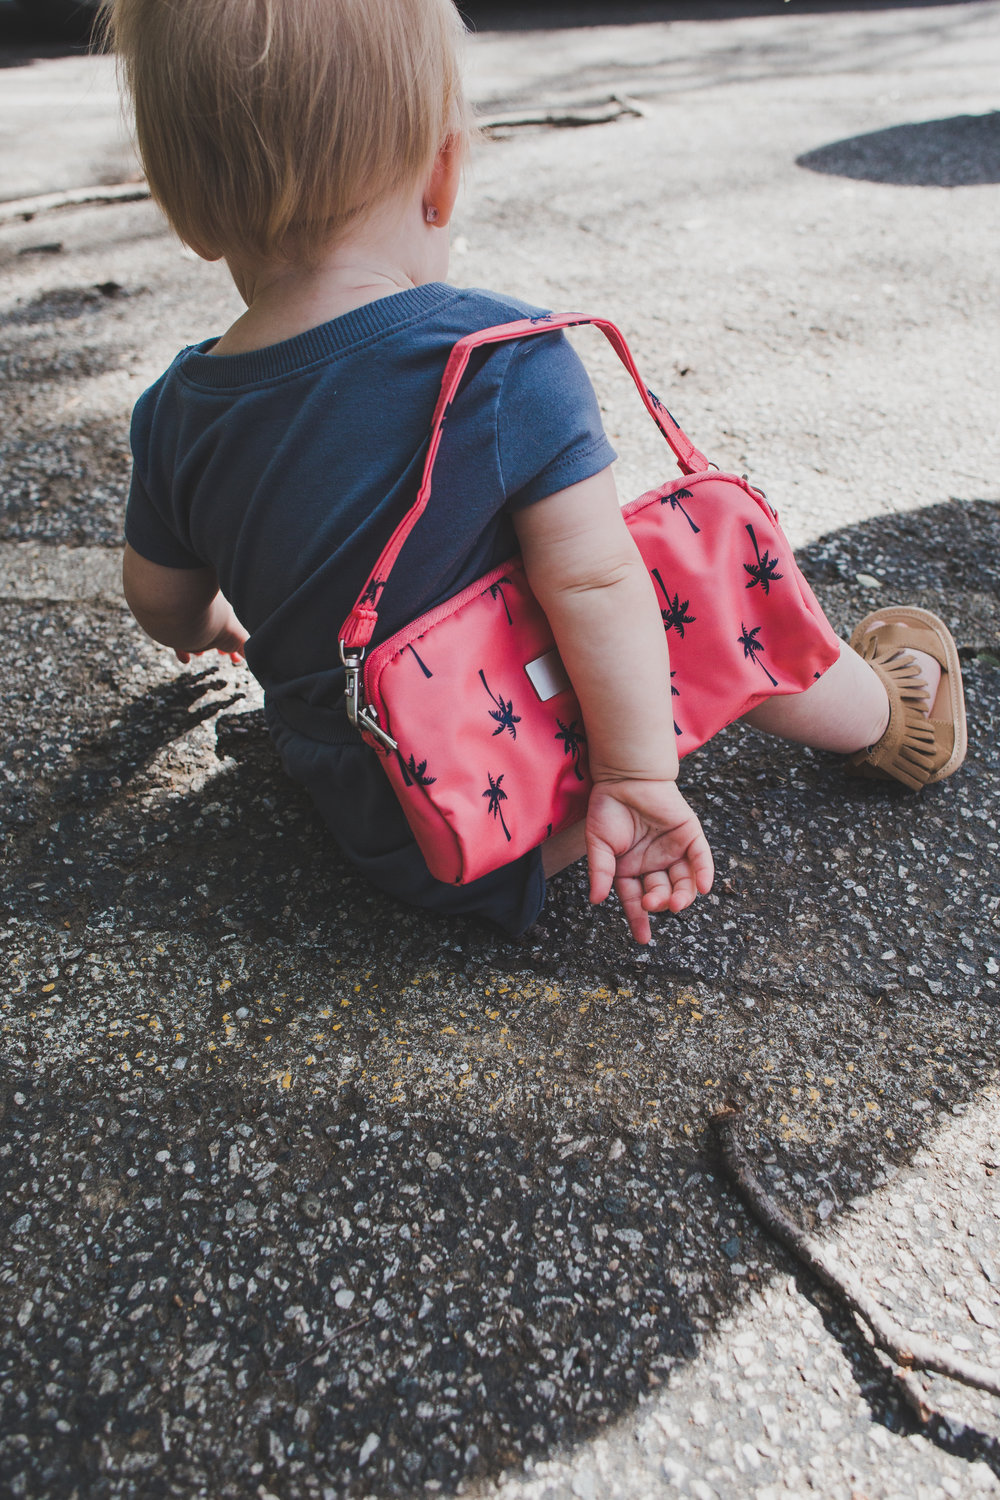 The JuJuBe Be Set Bags - Best Diaper Bags for Moms - Purses for Babies